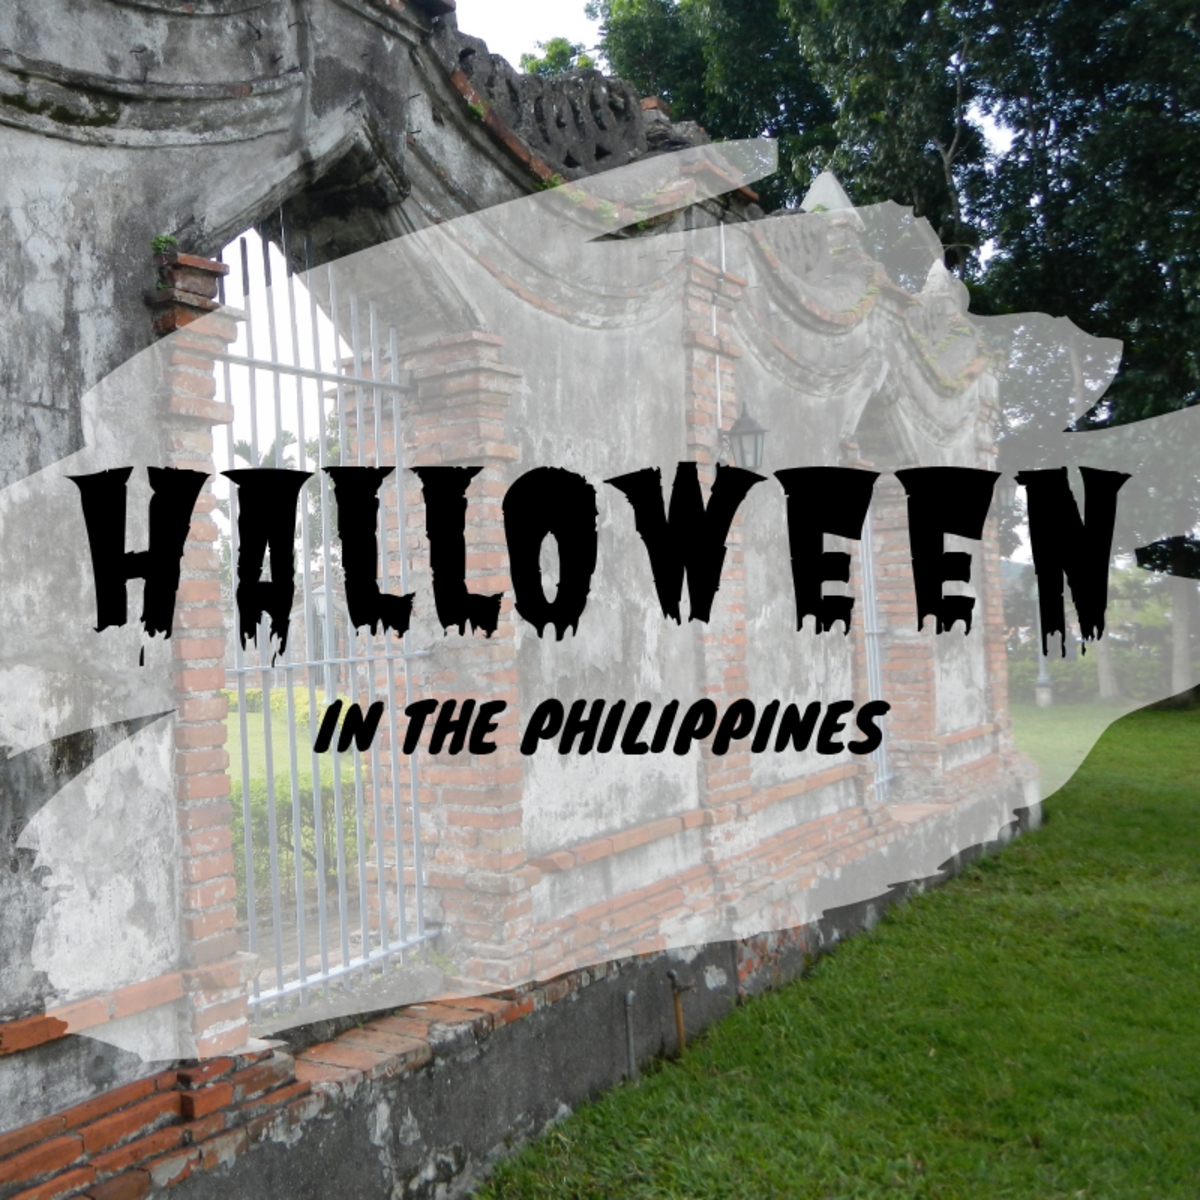 Halloween celebrations in the Philippines don't look very similar to those in the West, but they're just as much fun.